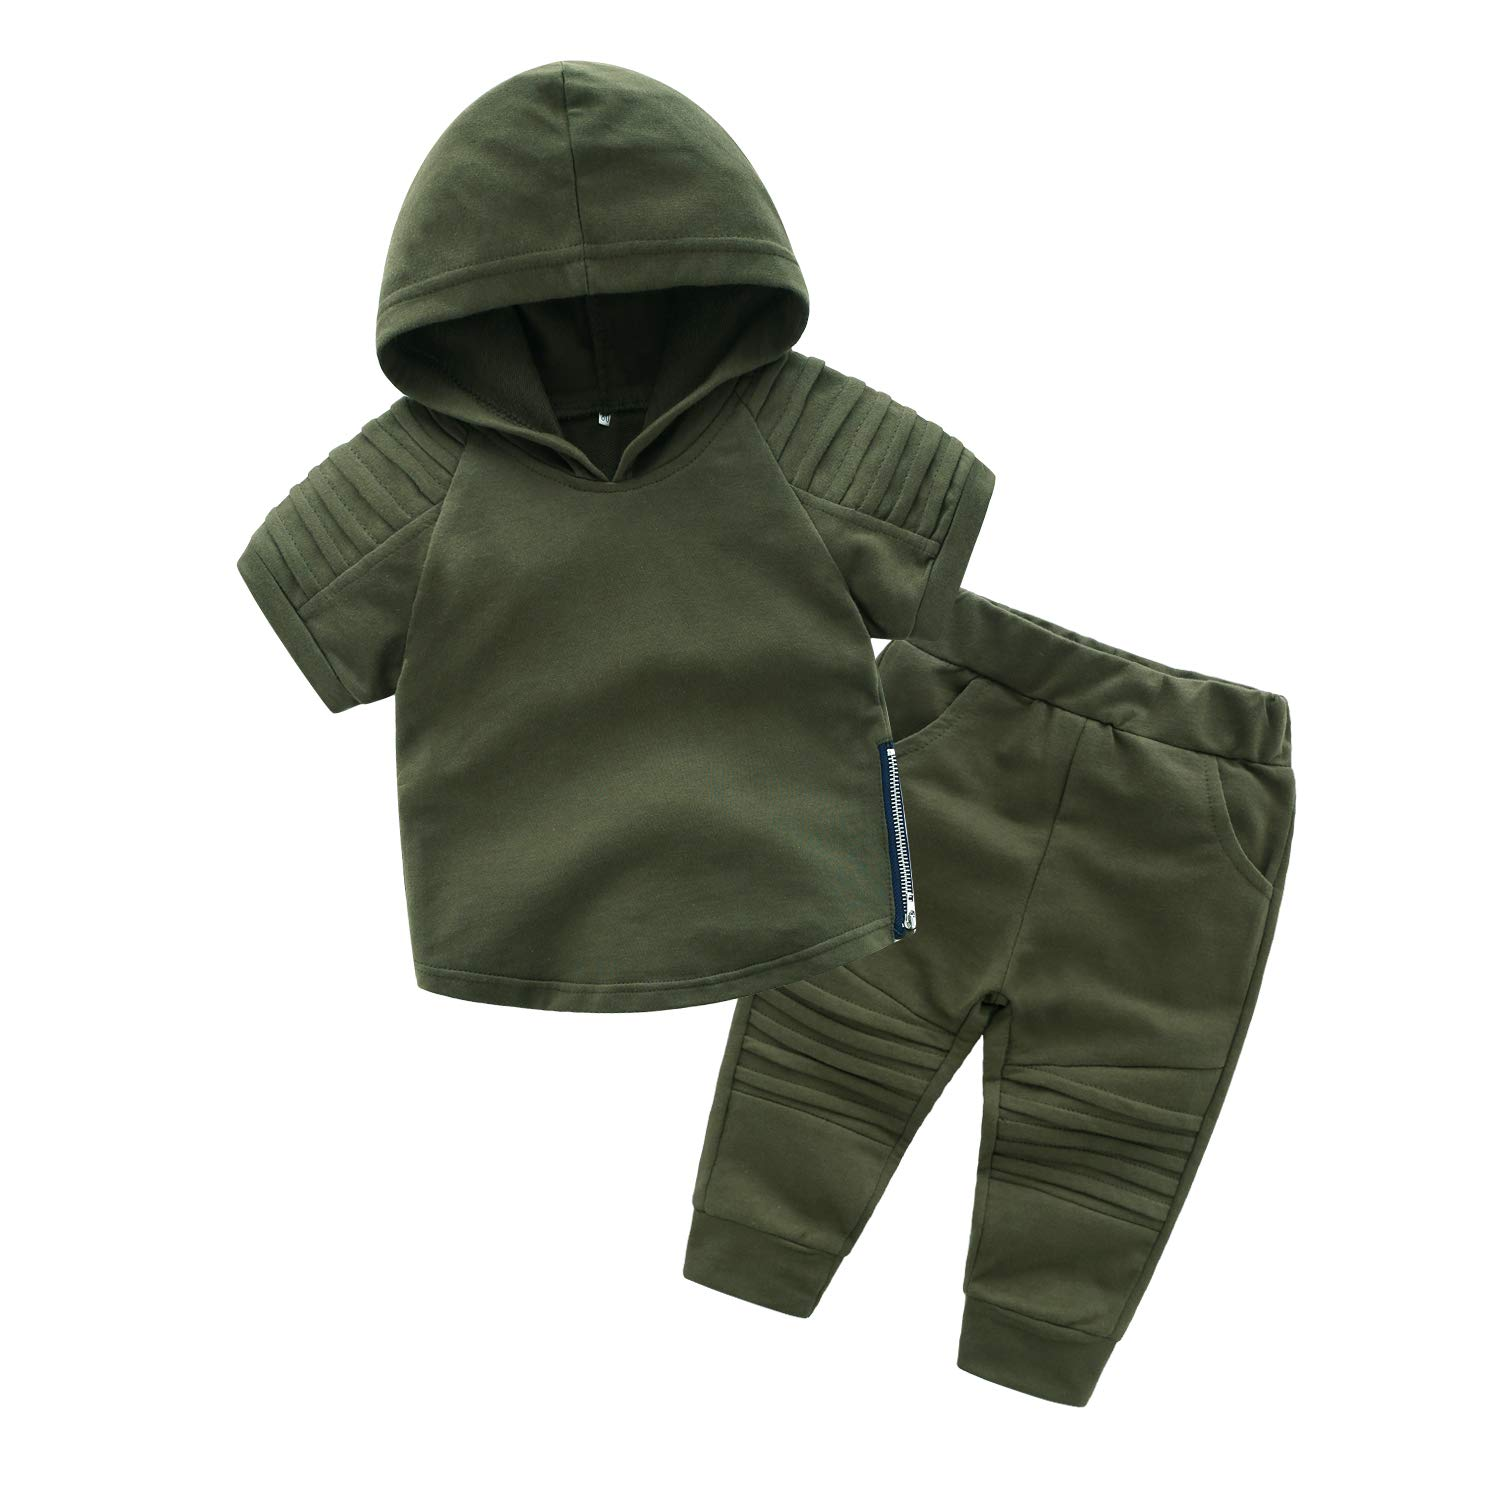 Kimocat Boys Casual Breathable Hoodie Sweatshirt Sports Clothes Sets Kids Outfits Tracksuit Short-Sleeve Tops+Pants (Green, 2T) by Kimocat